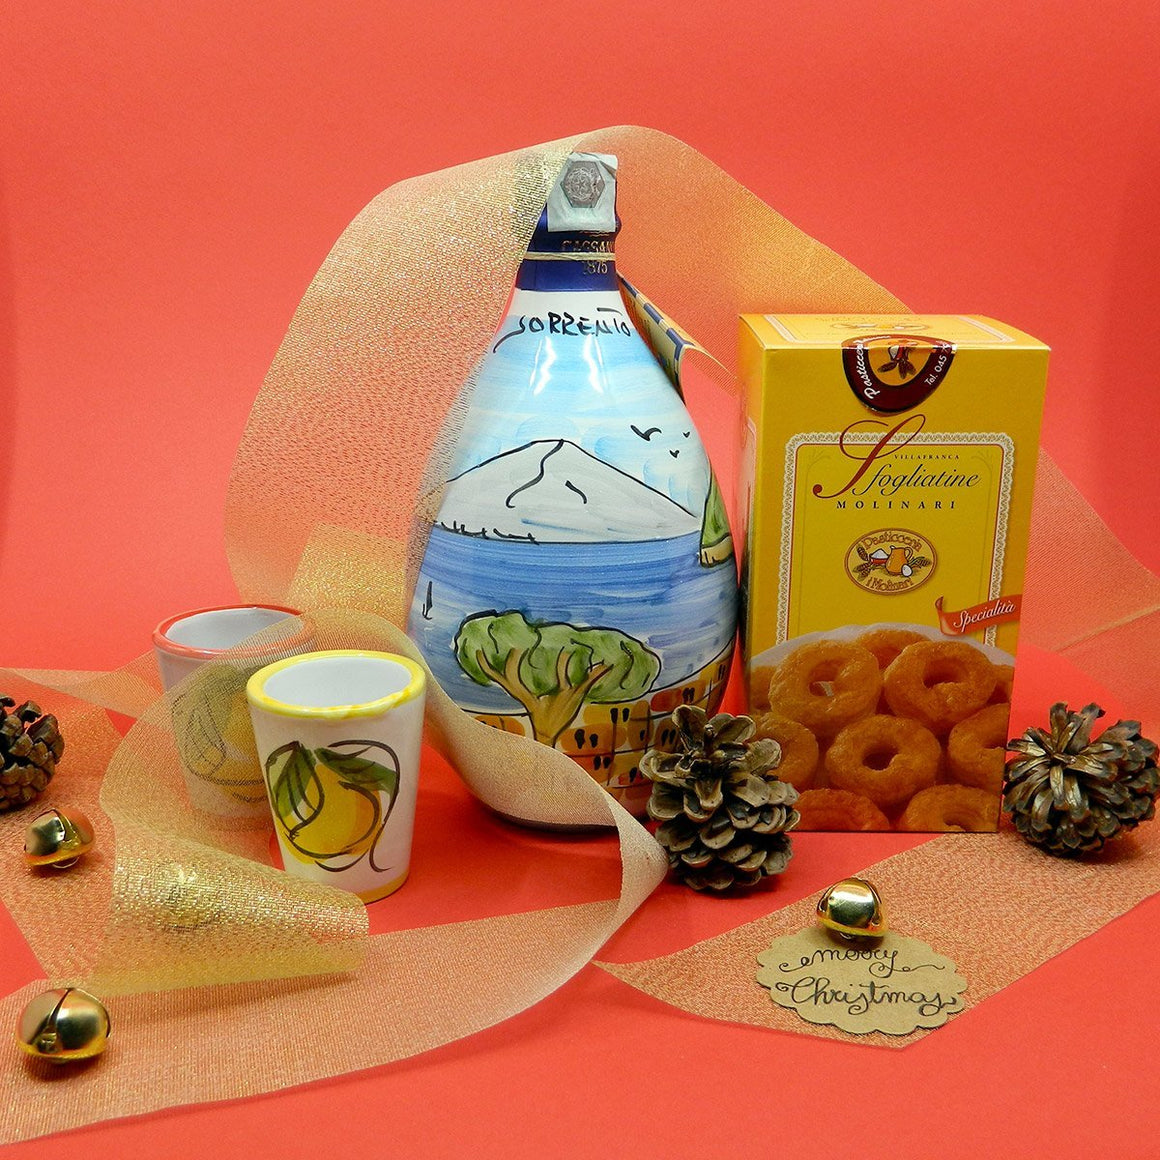 HandMade Ceramic with Limoncello of Sorrento IGP & Sfogliatine - PepeGusto